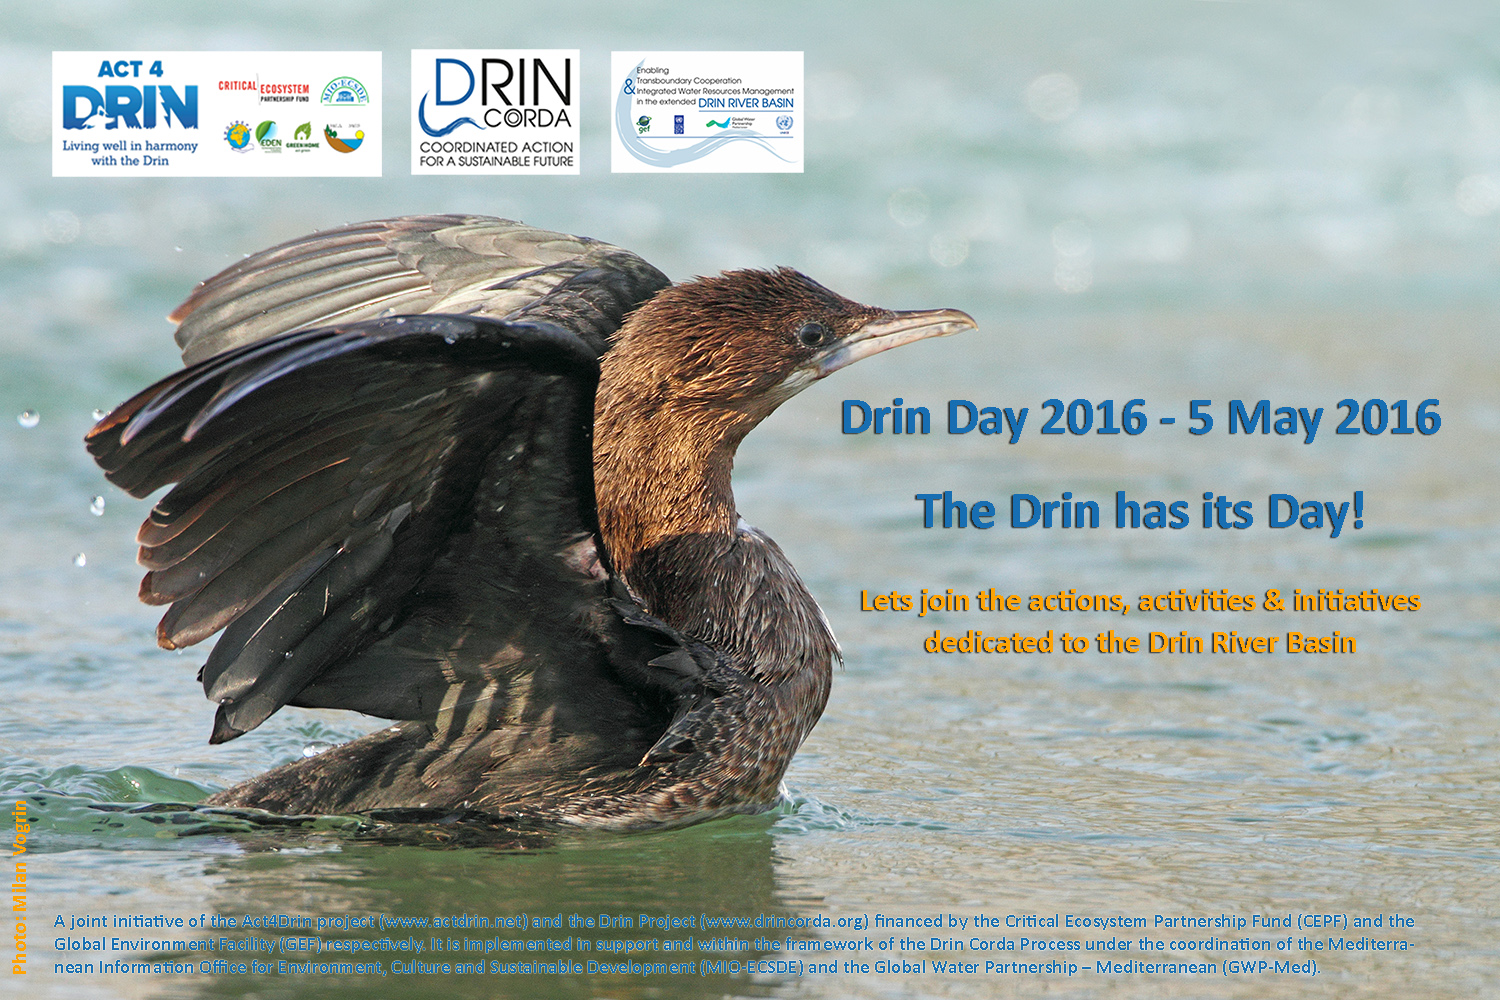 Drin Day 2016